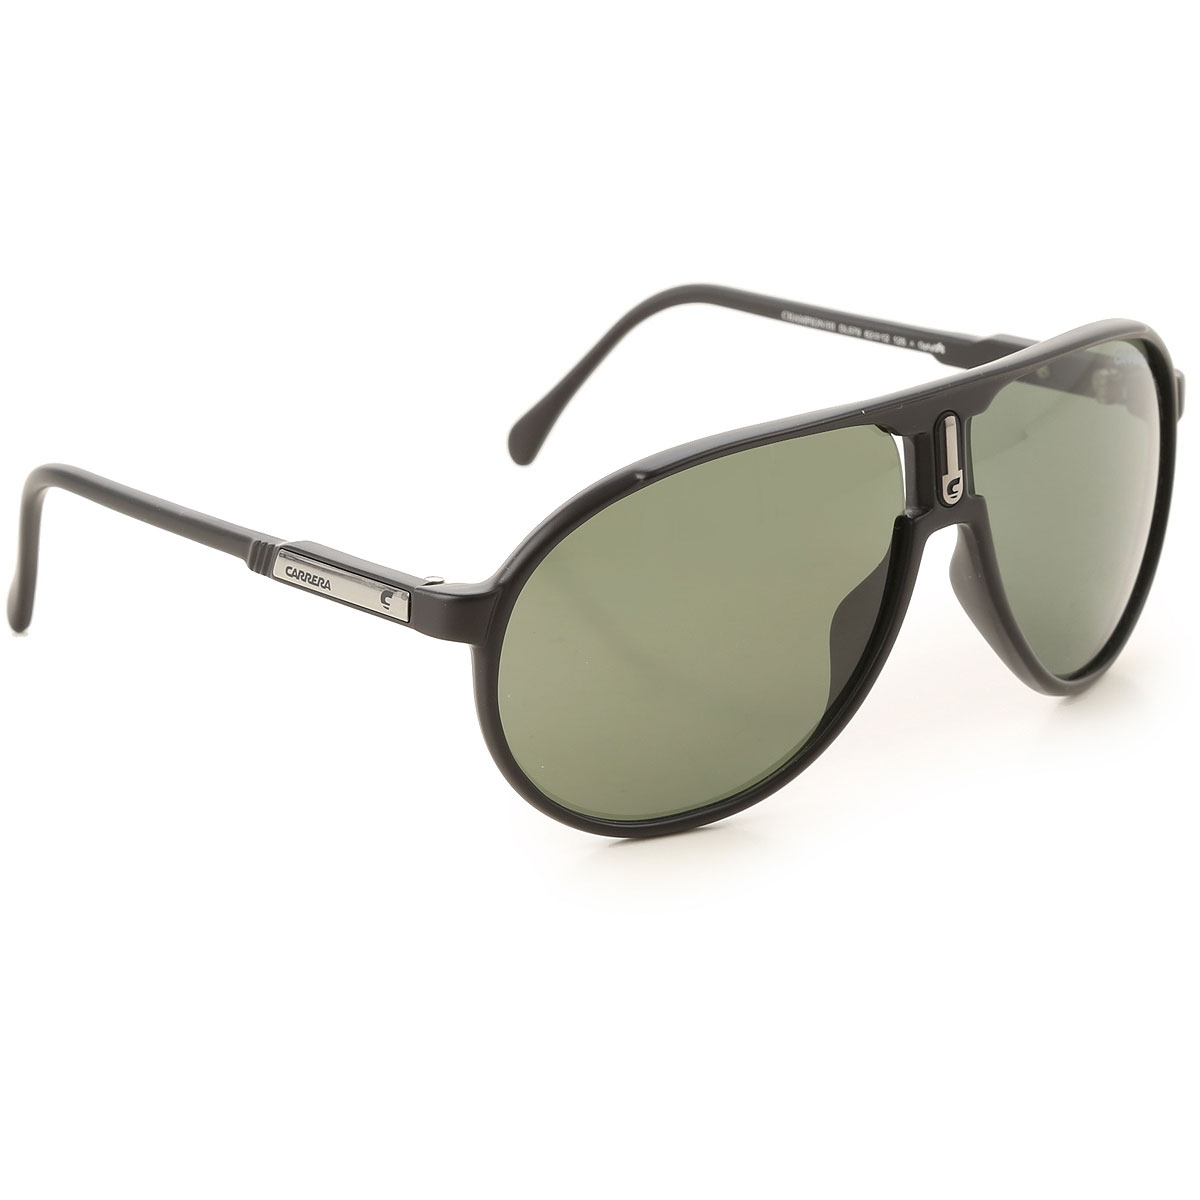 Carrera Sunglasses On Sale, Black, 2019